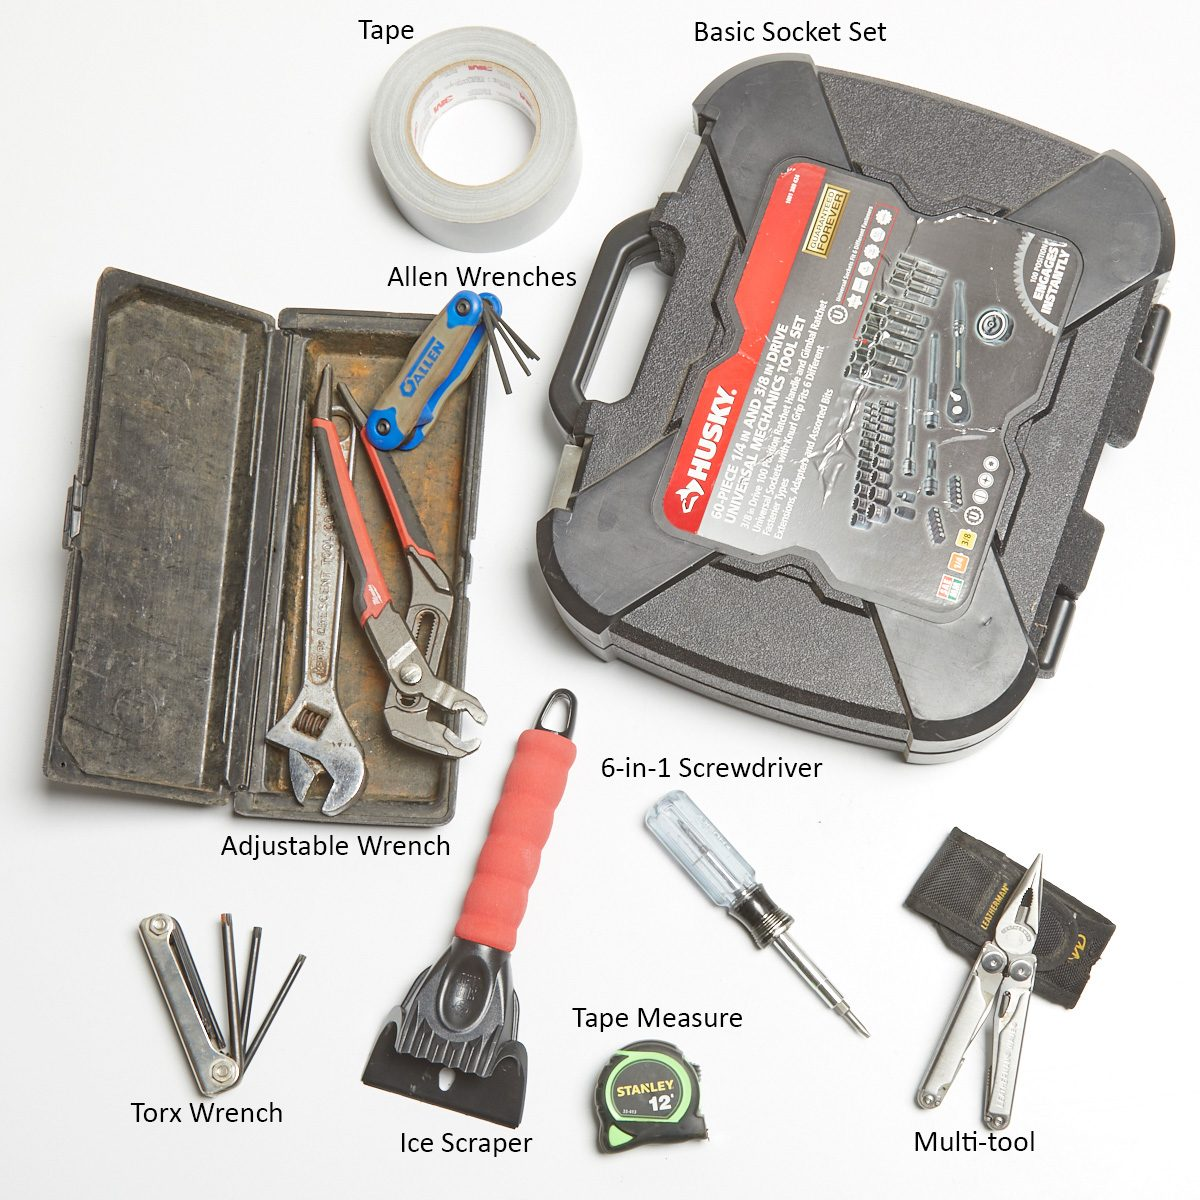 Basic and Essential Tool Kit | Construction Pro Tips